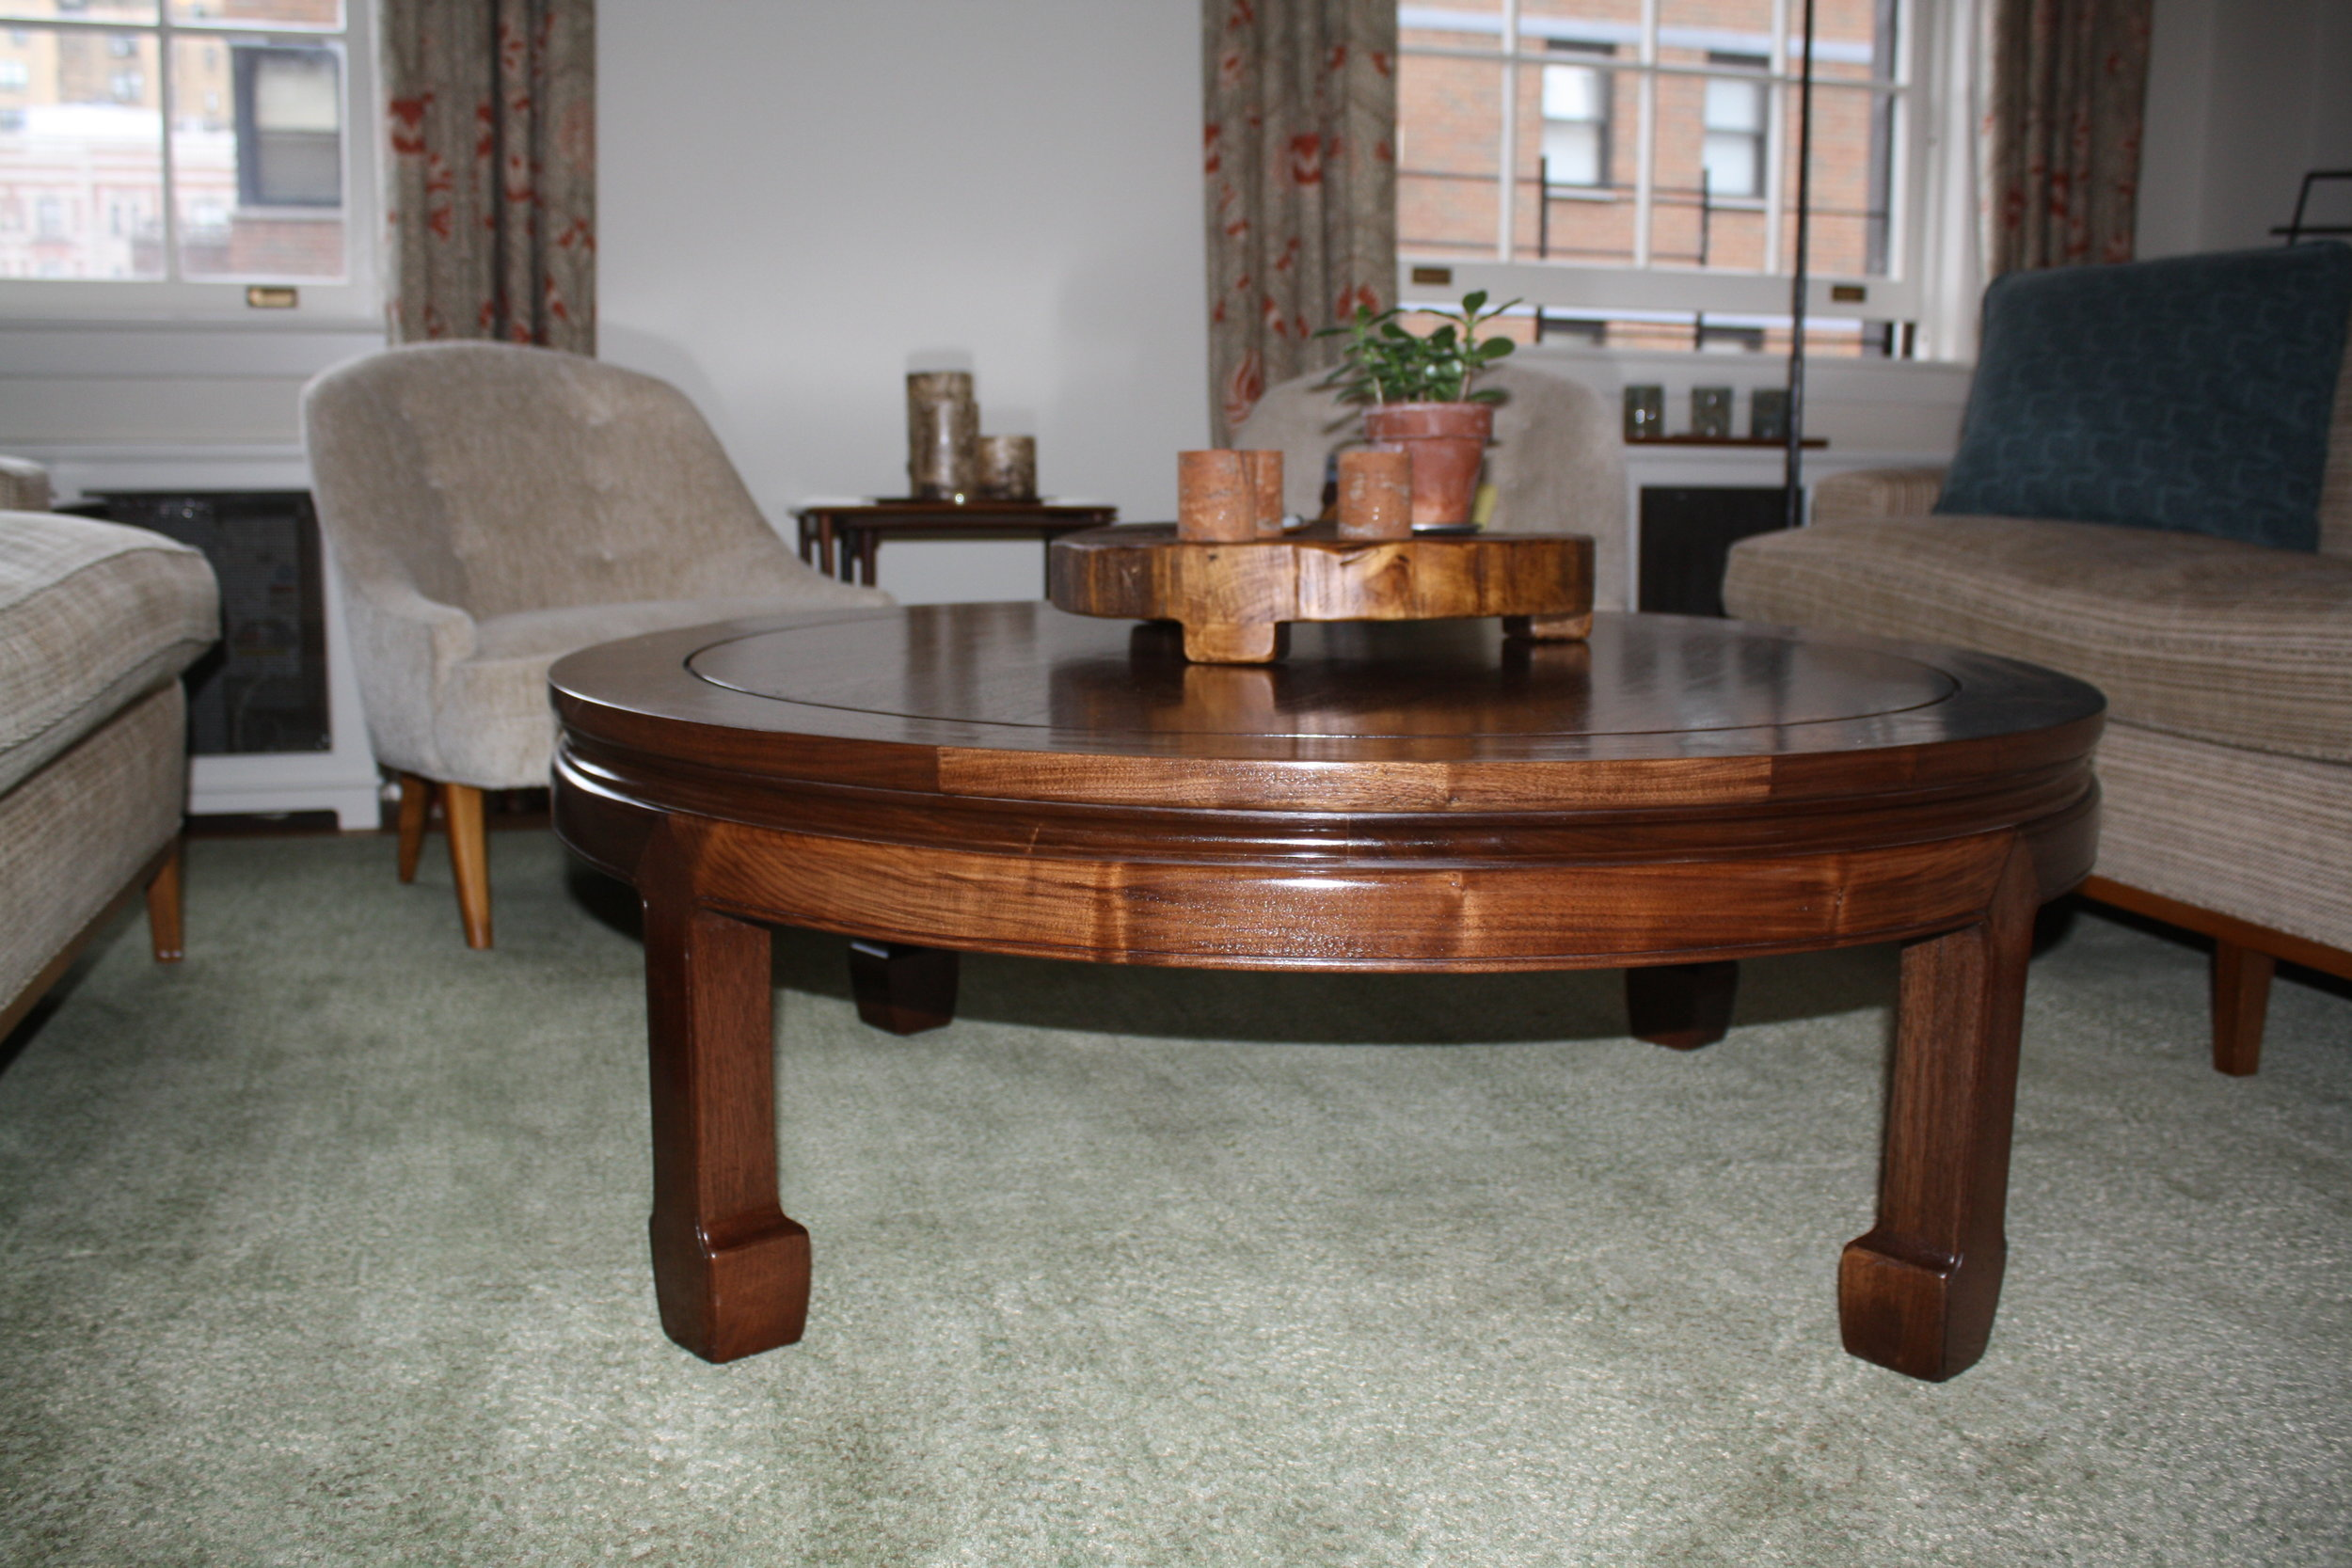 Asian influenced table